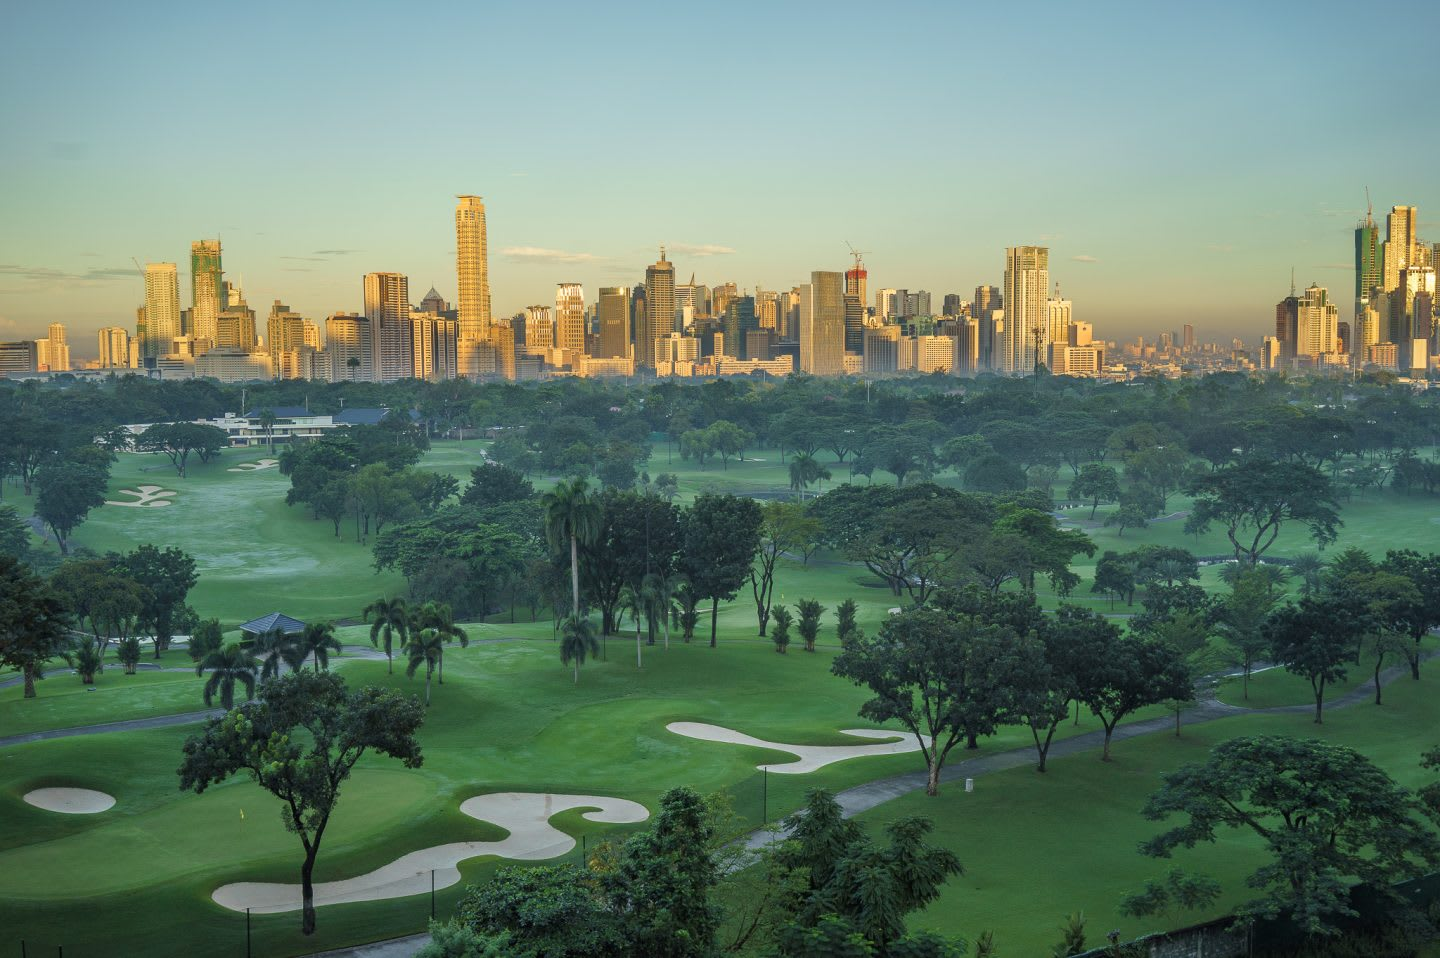 Golf course and city against blue sky, golf, golf course, skyline, sport, GamePlan A